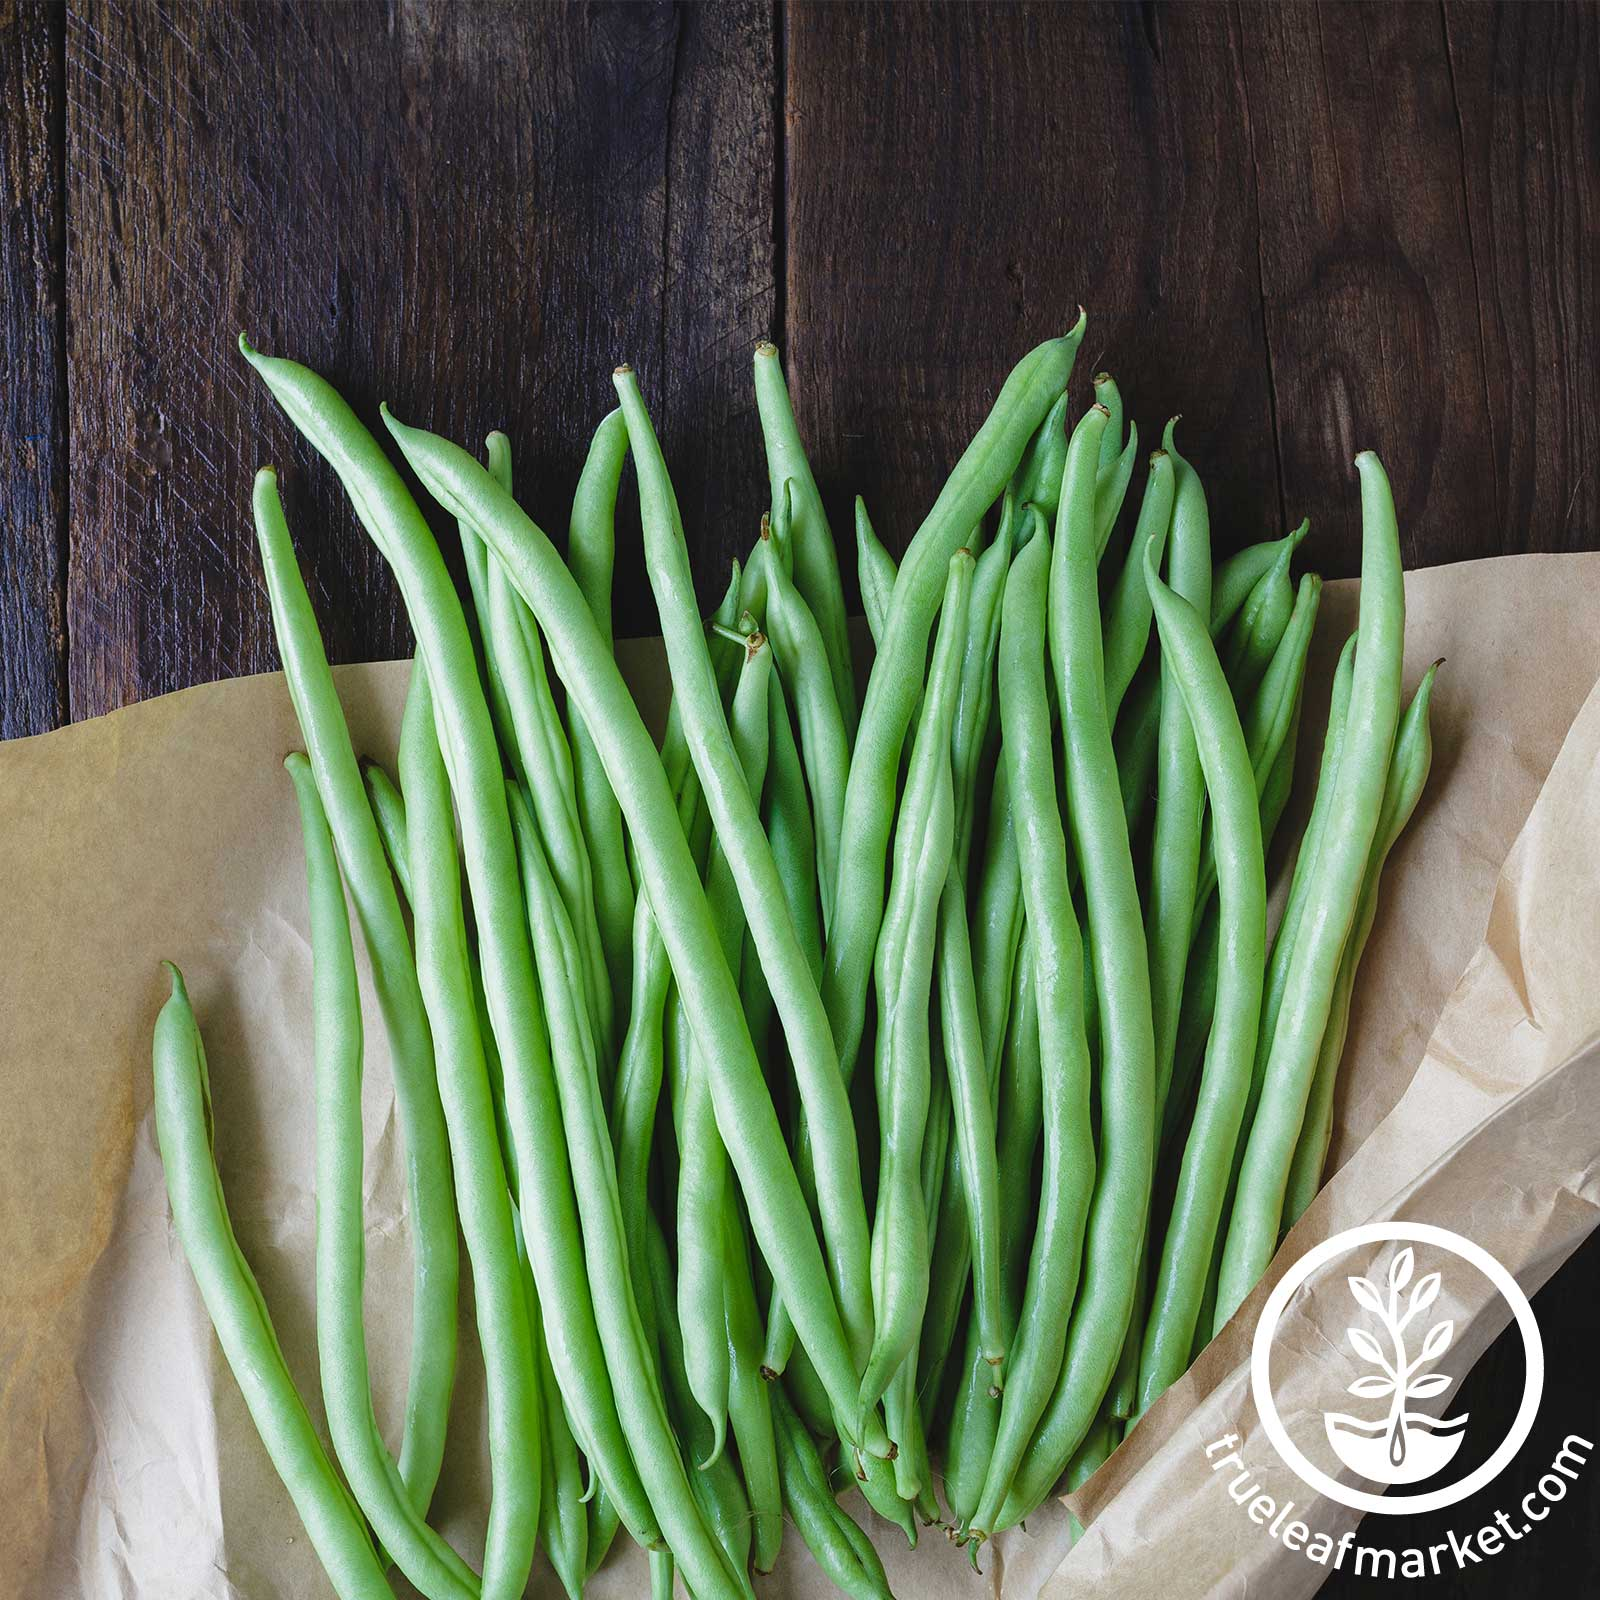 Blue Lake Bush Bean Seeds